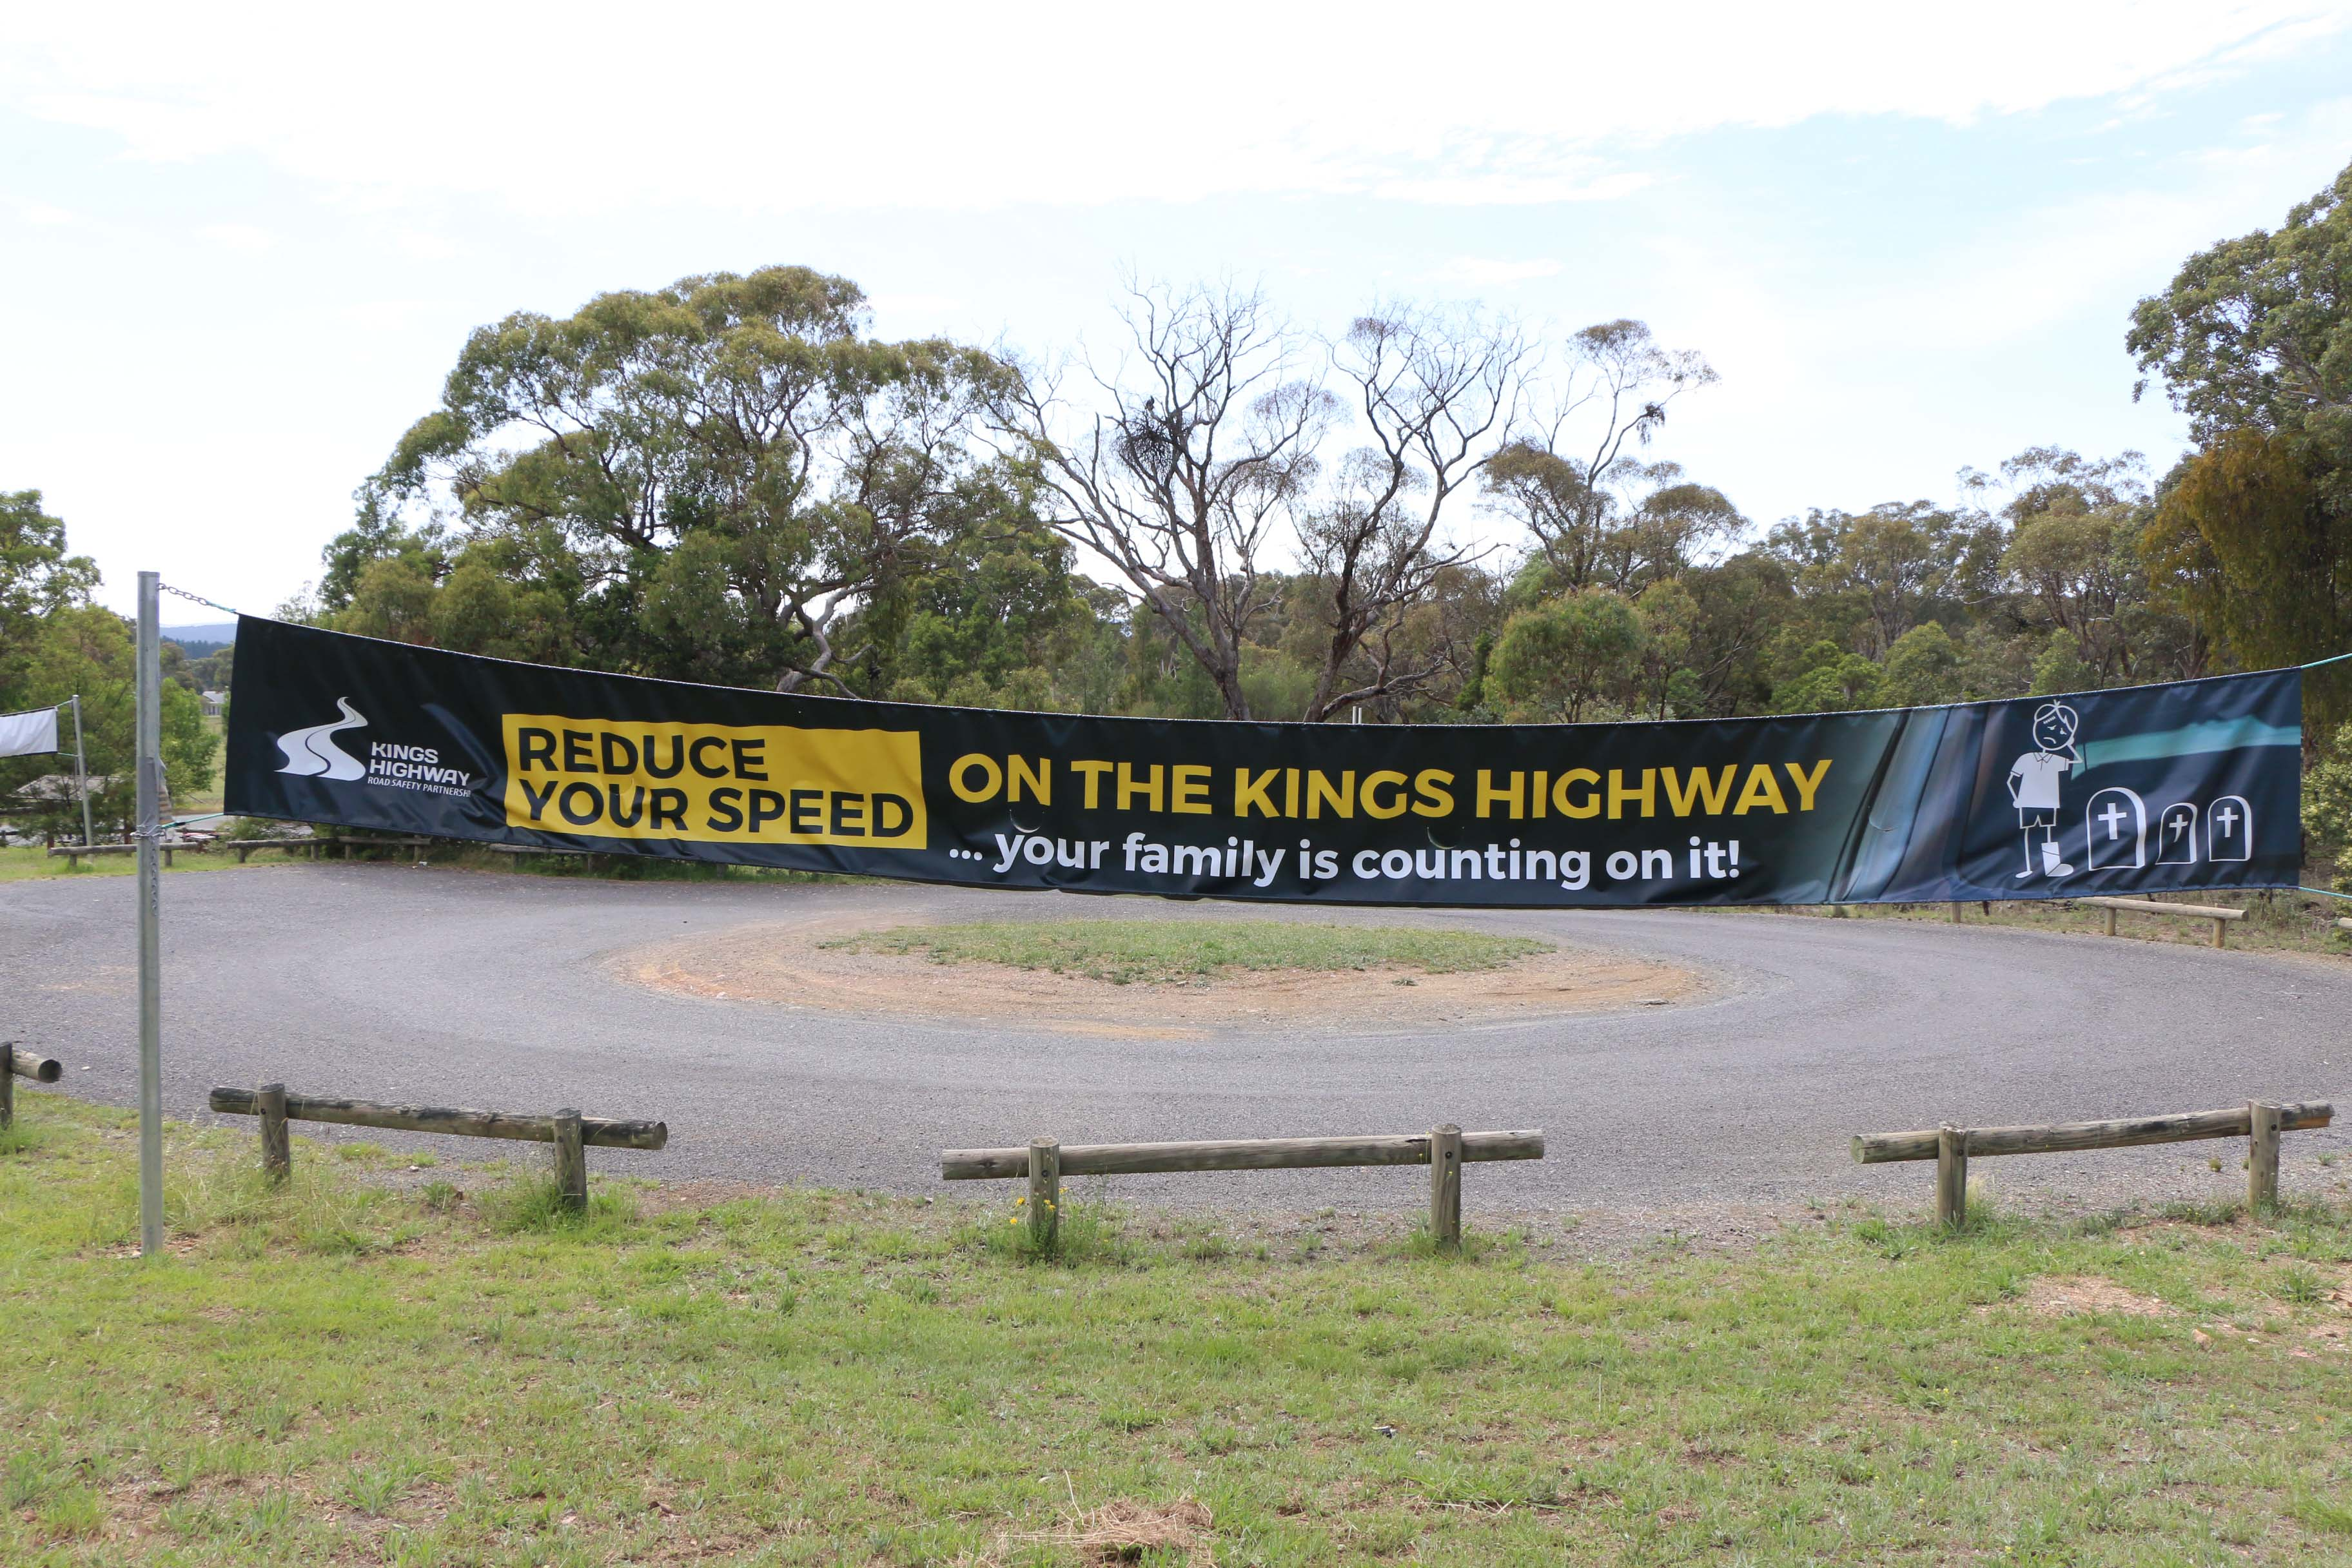 Travel safely on the Kings Highway this summer | ACT